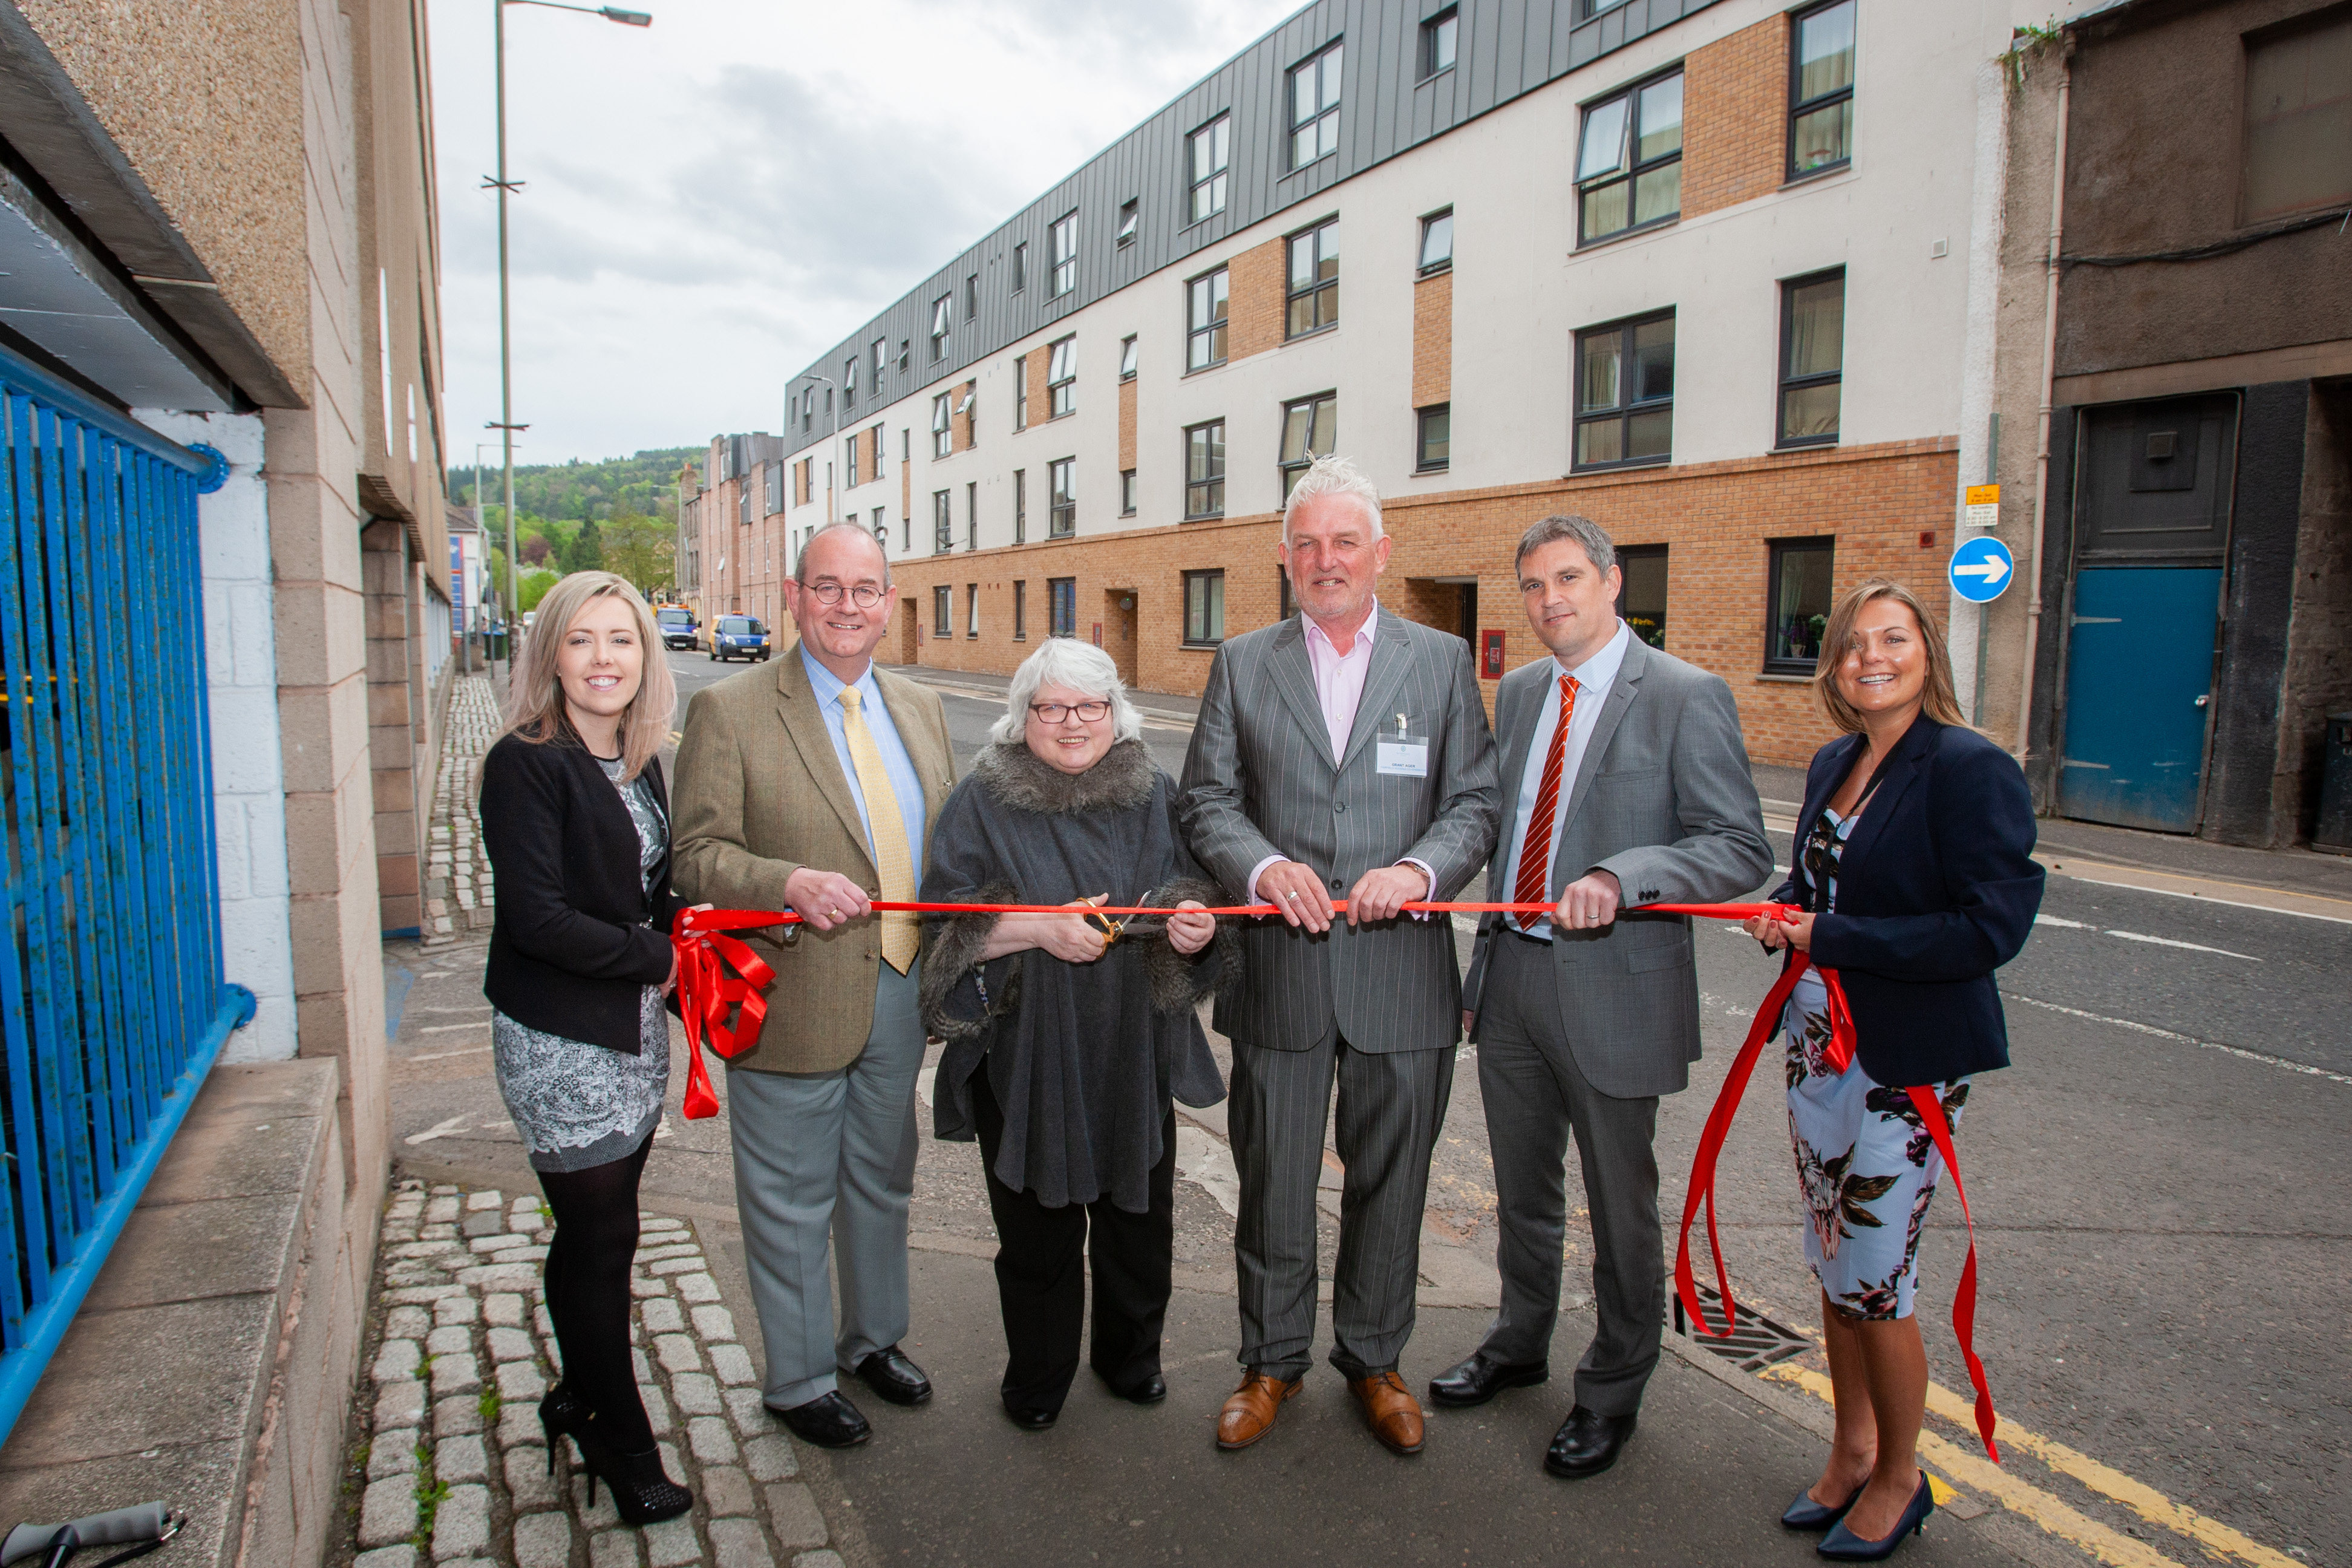 Fairfield's Canal Street development opened in May. From left: Stephanie Joss, corporate administrator, Fairfield, Councillor Bob Brawn, Rena Crighton, chairwoman of, Fairfield, Grant Ager, chief executive of  Fairfield, Stewart Shearer, managing director, Robertson Partnership Homes) and Sharon Bell, corporate manager of Fairfield.